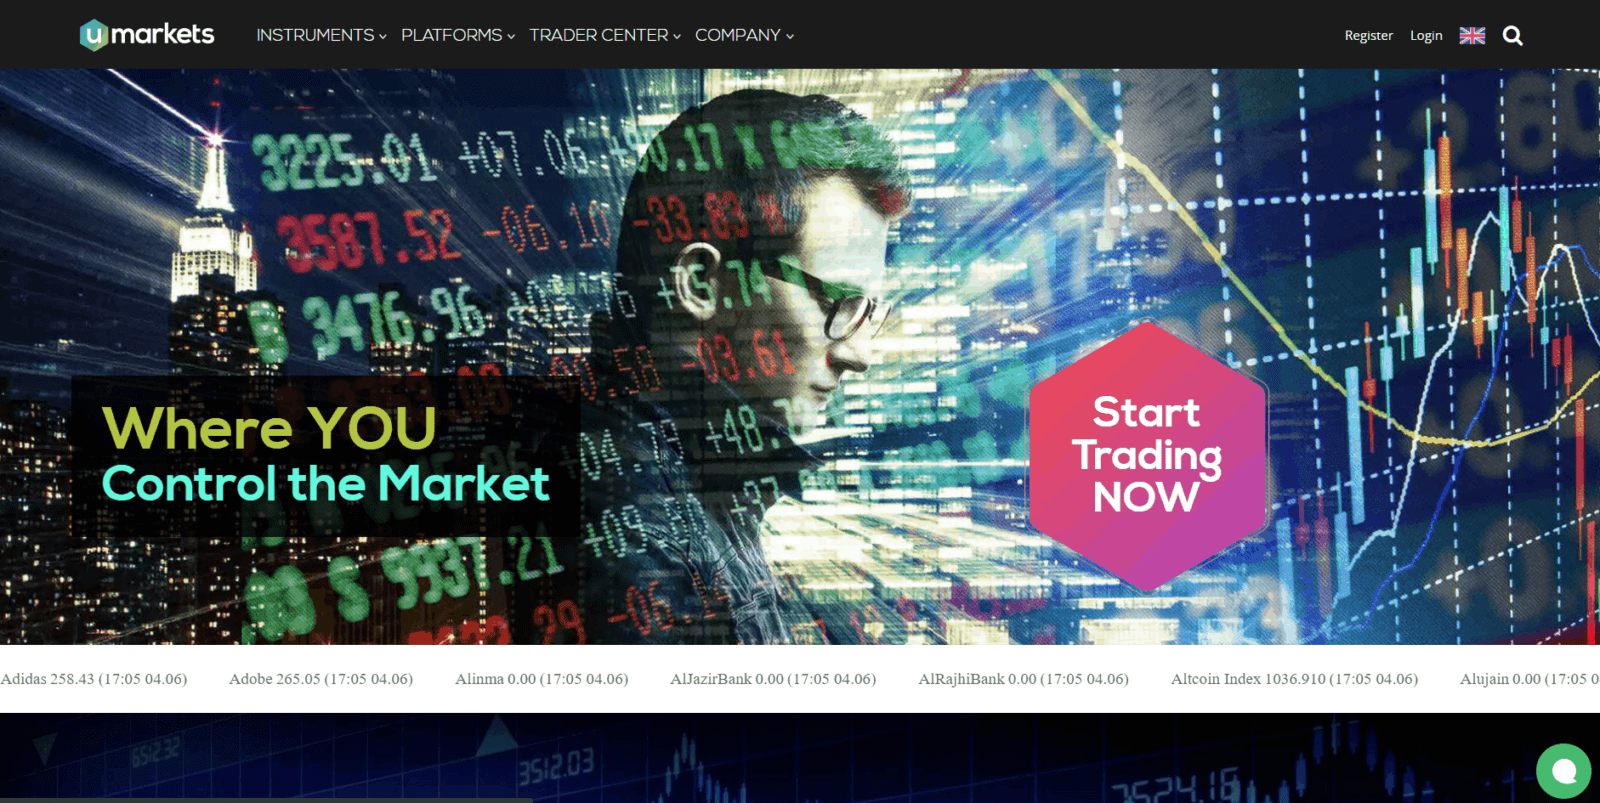 What Umarkets forex broker offers you when investing your money